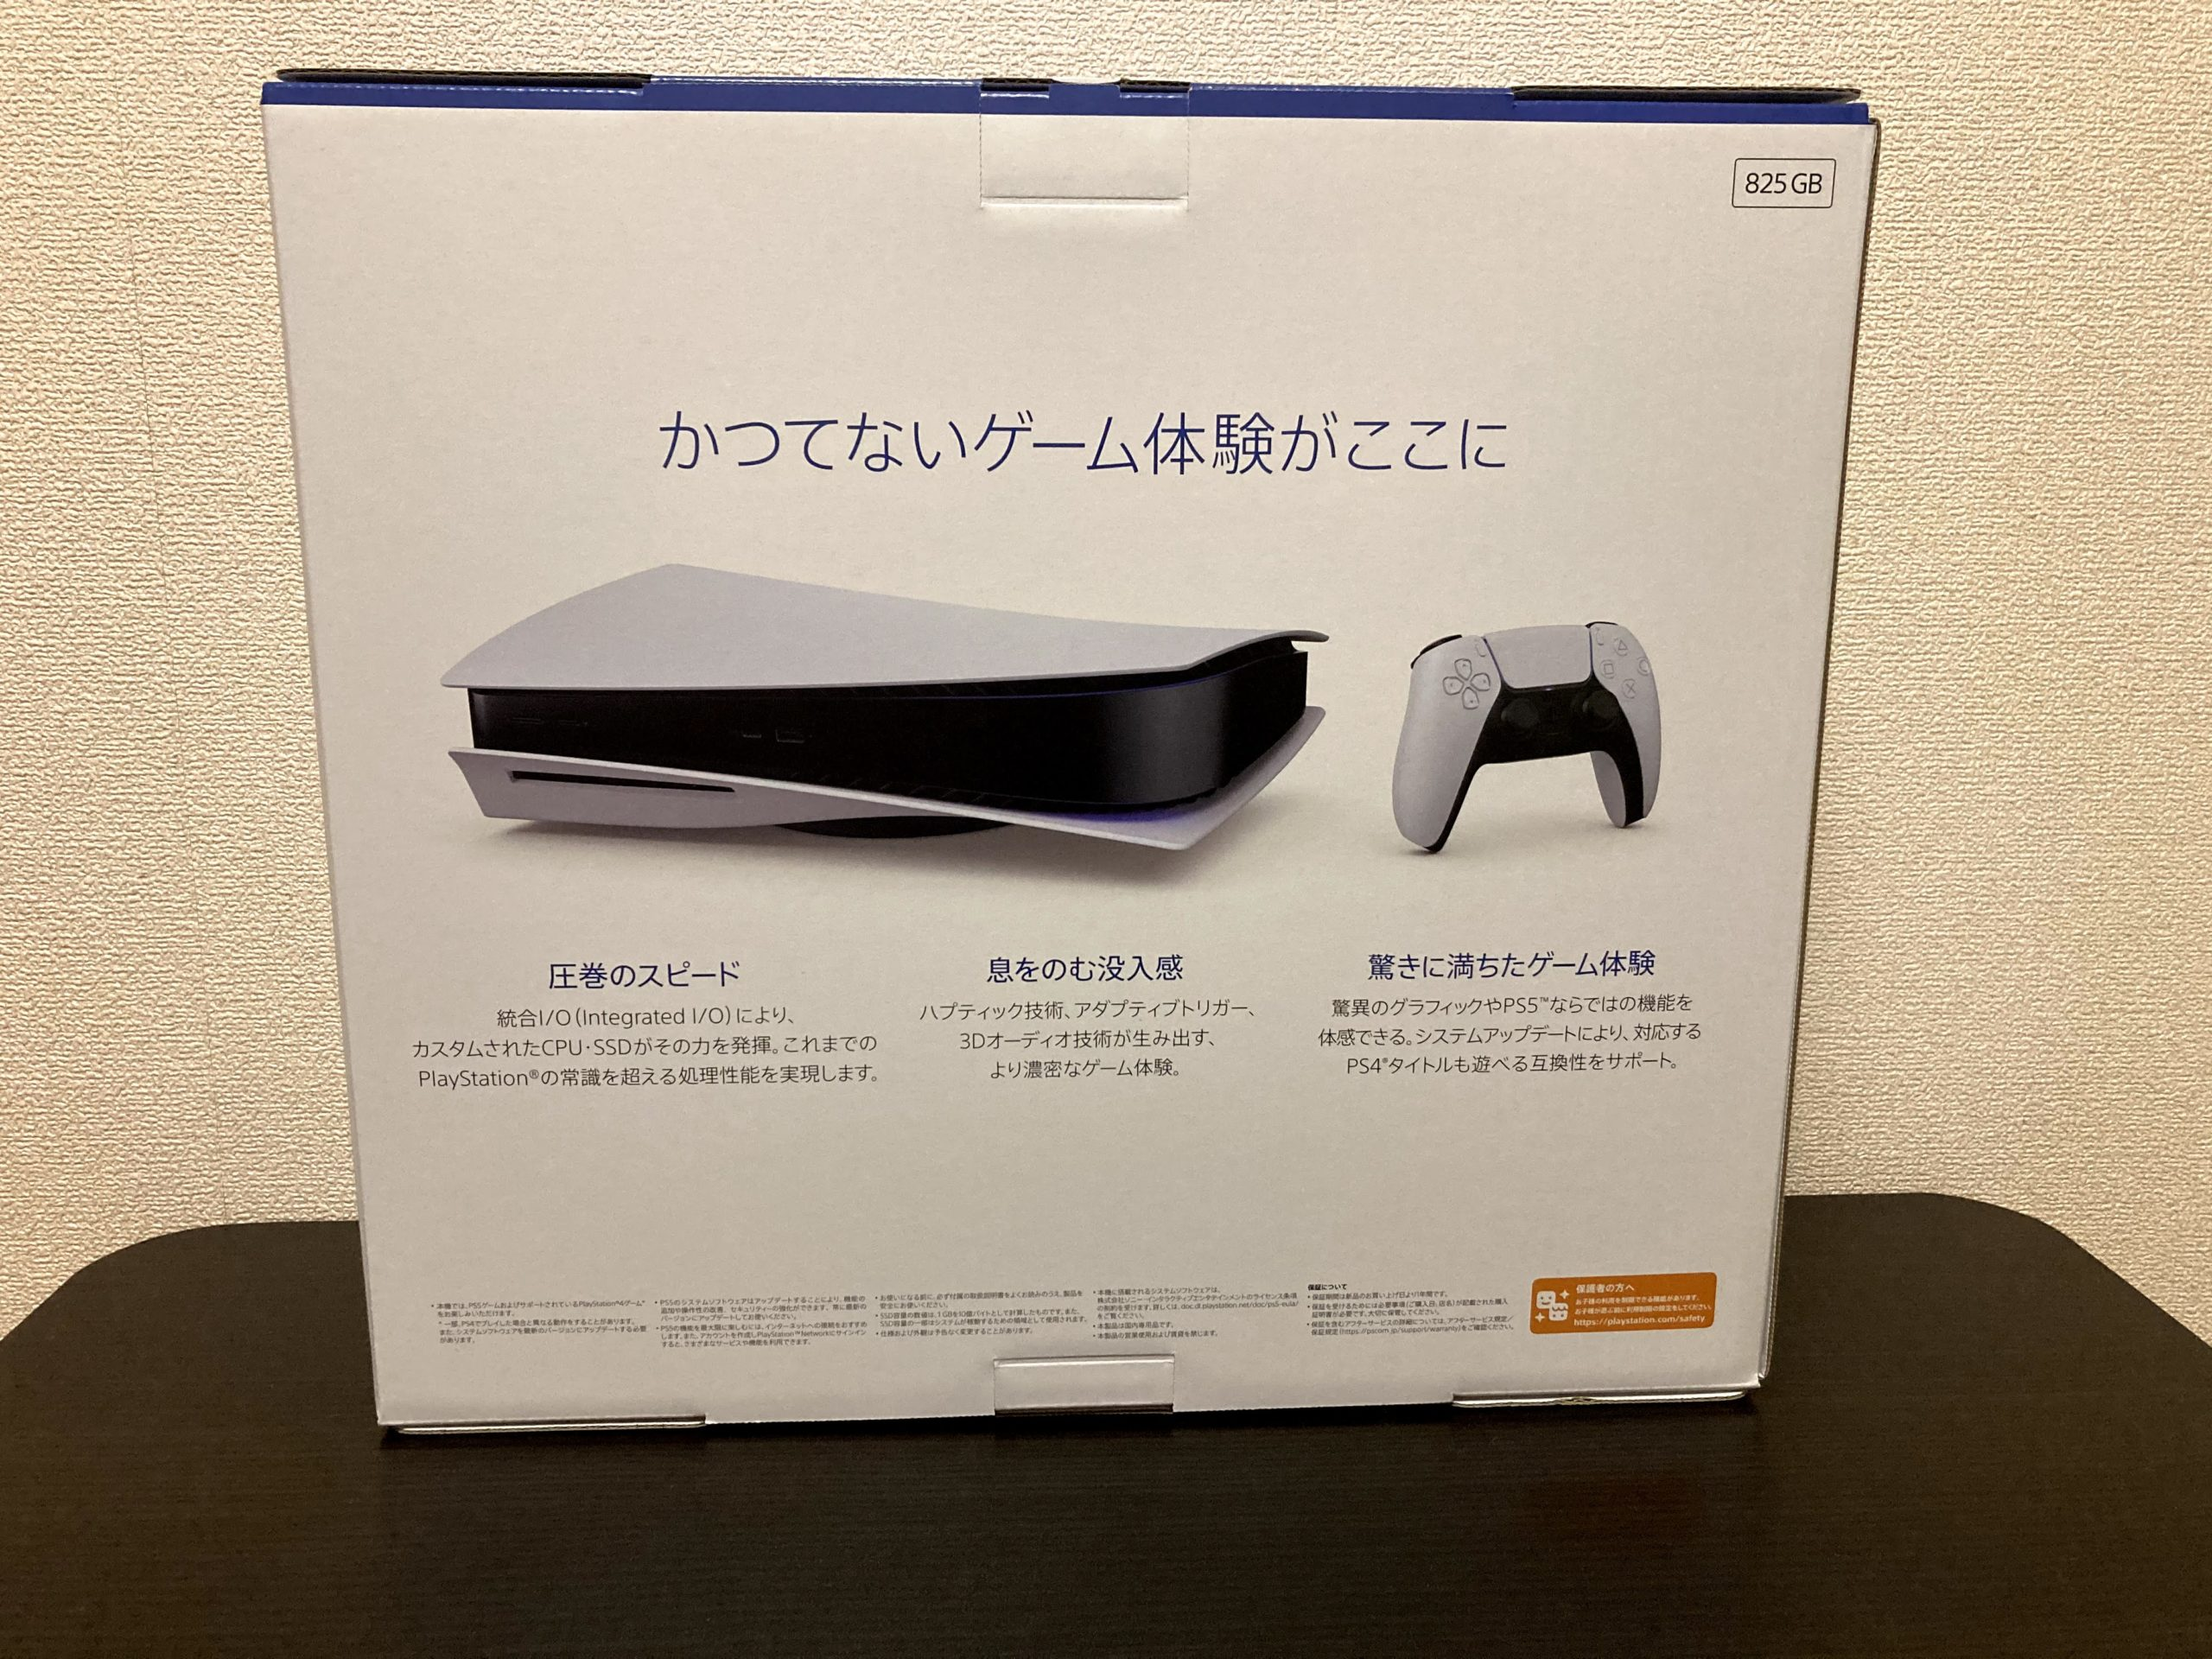 PS5 back